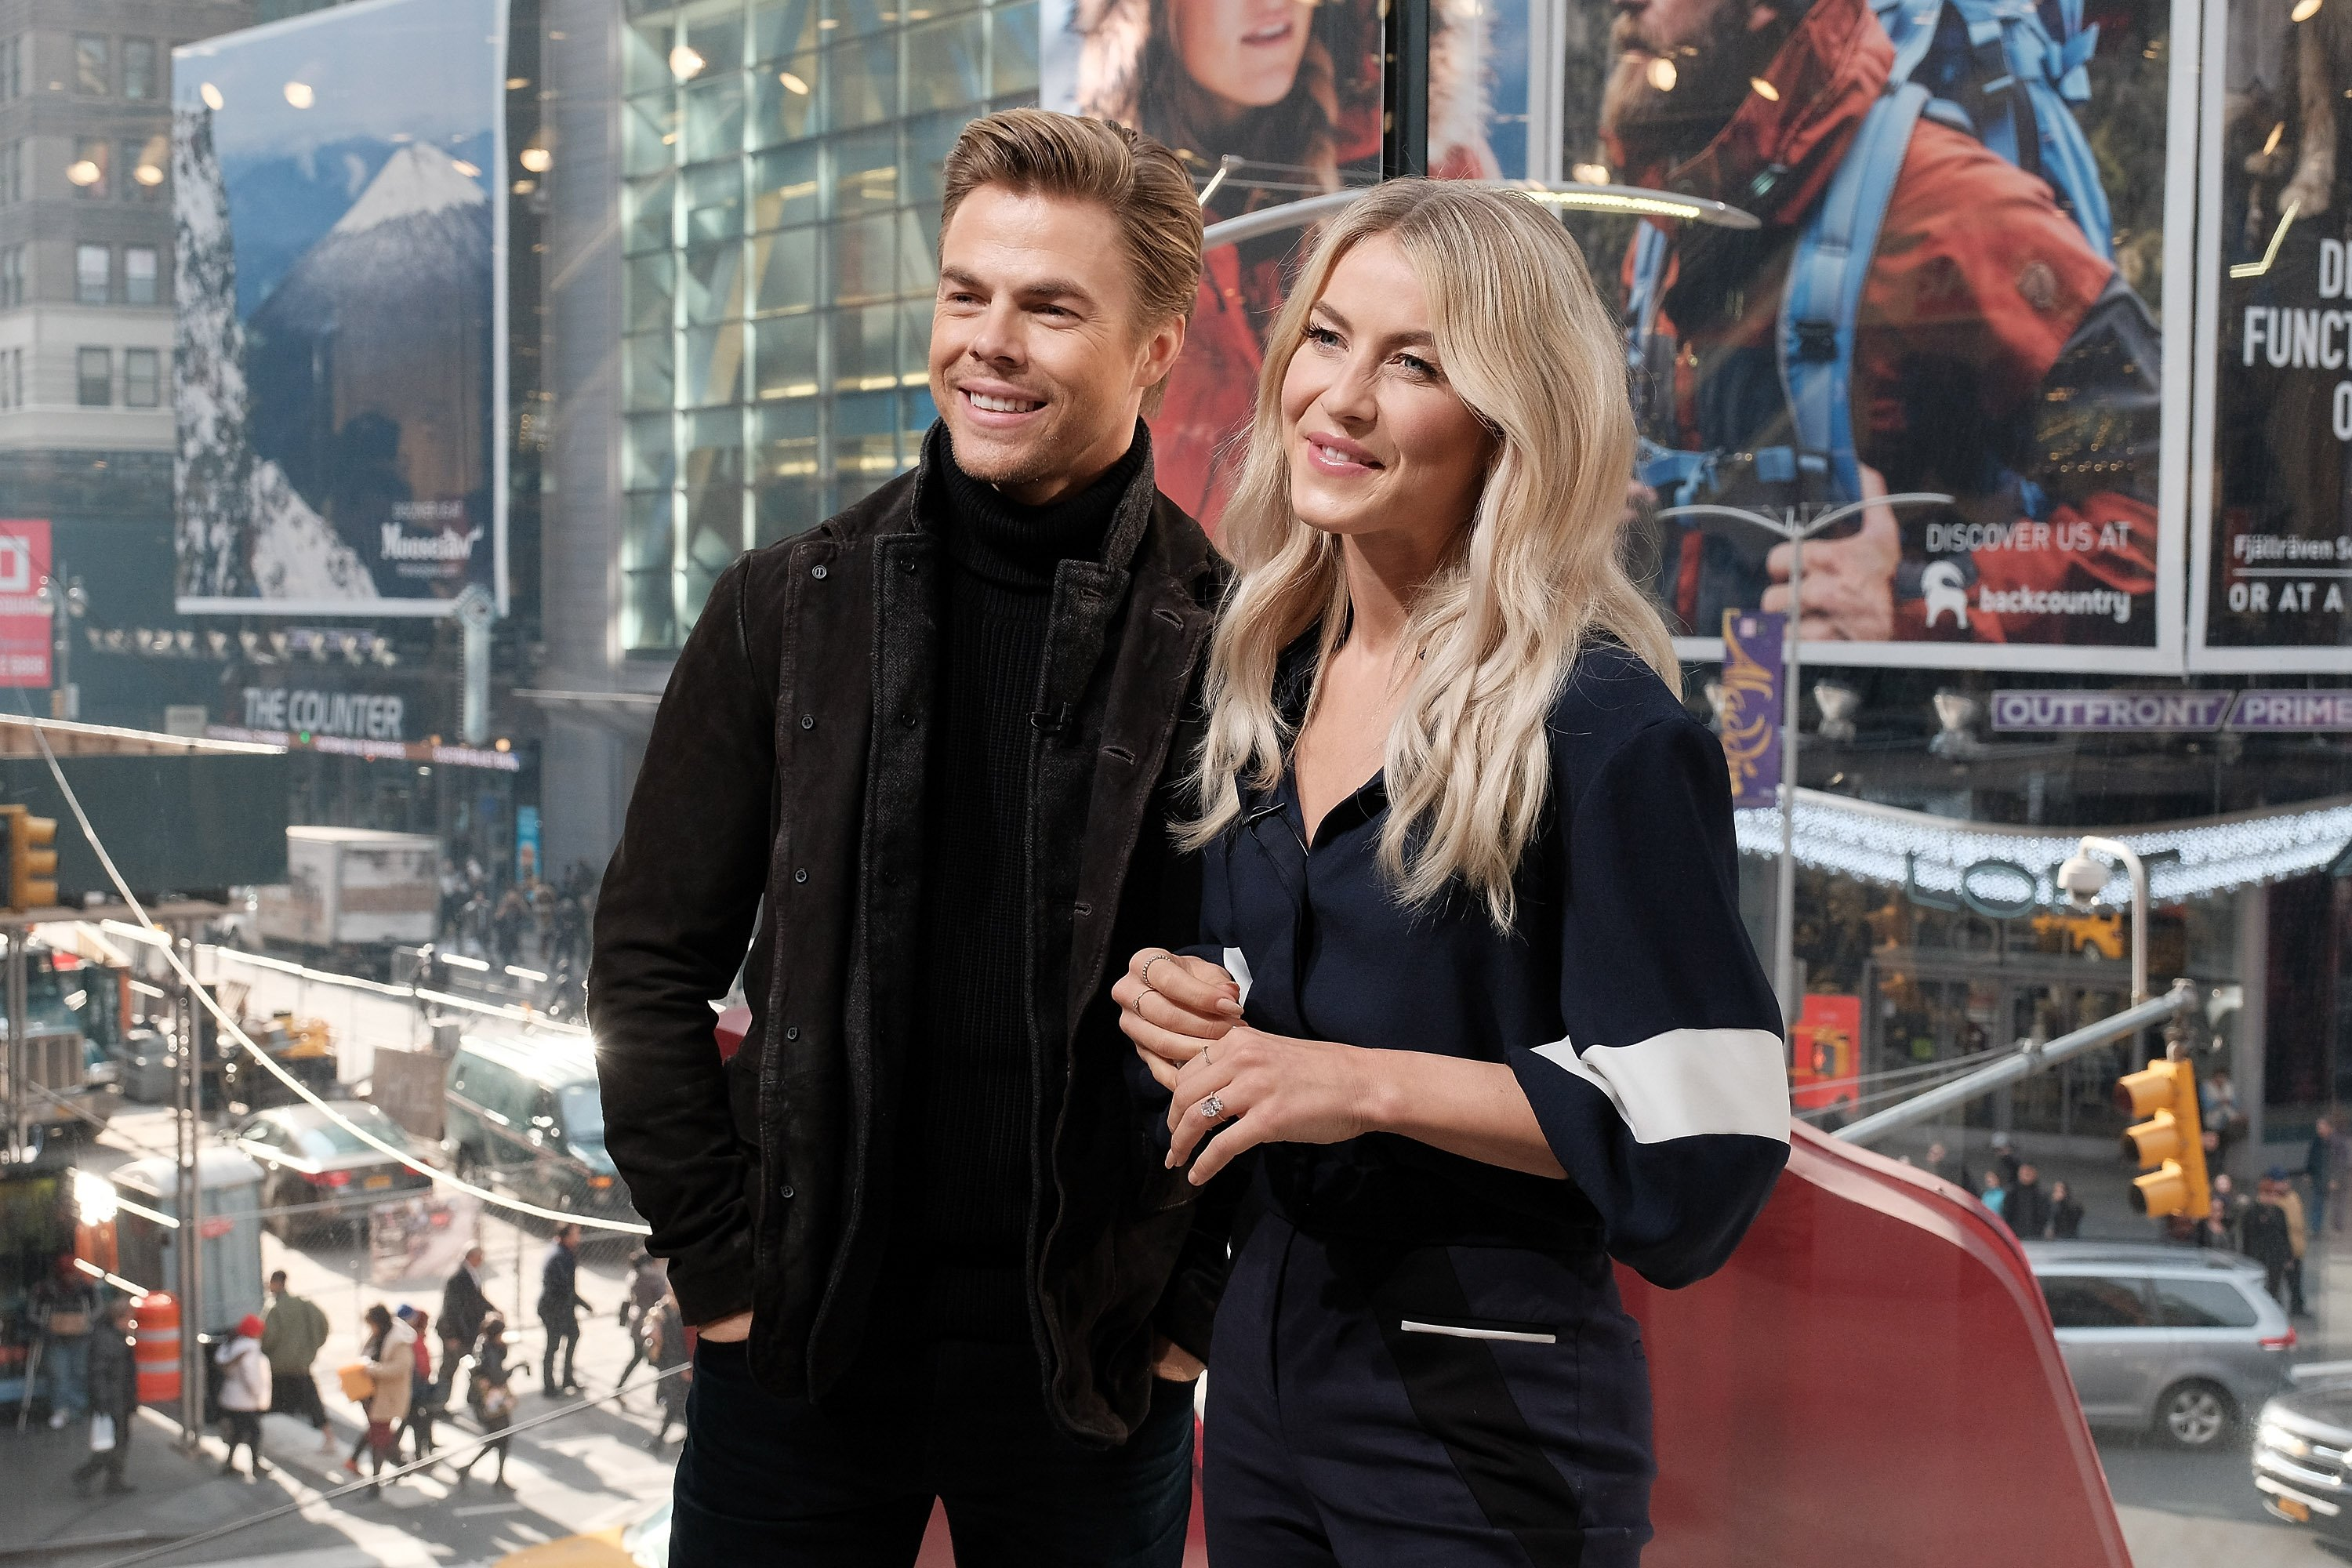 """Derek Hough and Julianne Hough visit """"Extra"""" in Times Square on December 13, 2016 